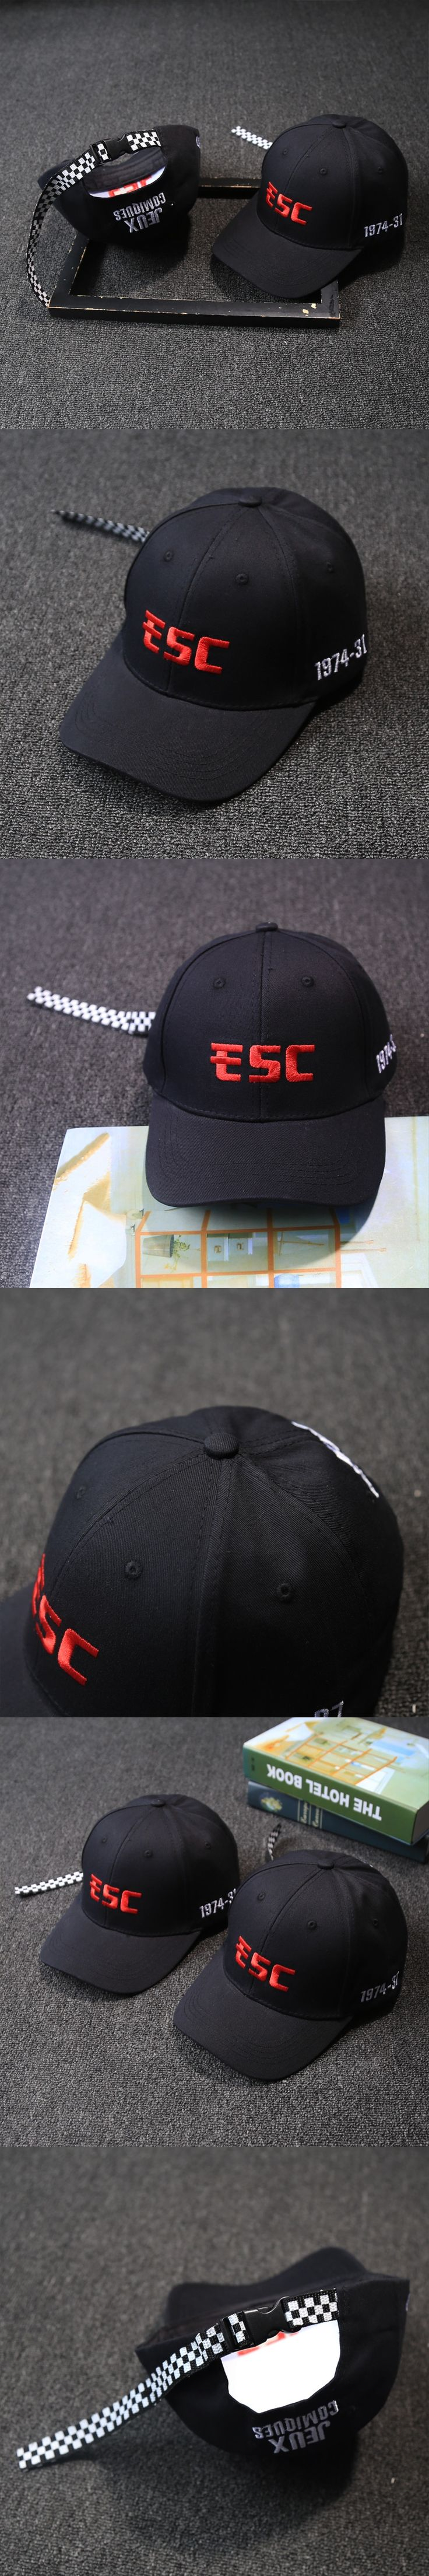 Red Letter Embroidery Checkerboard Regulation Band Baseball Cap Man Fashion Hiphop Peaked Cap Unisex Black Casquette Panel Hats